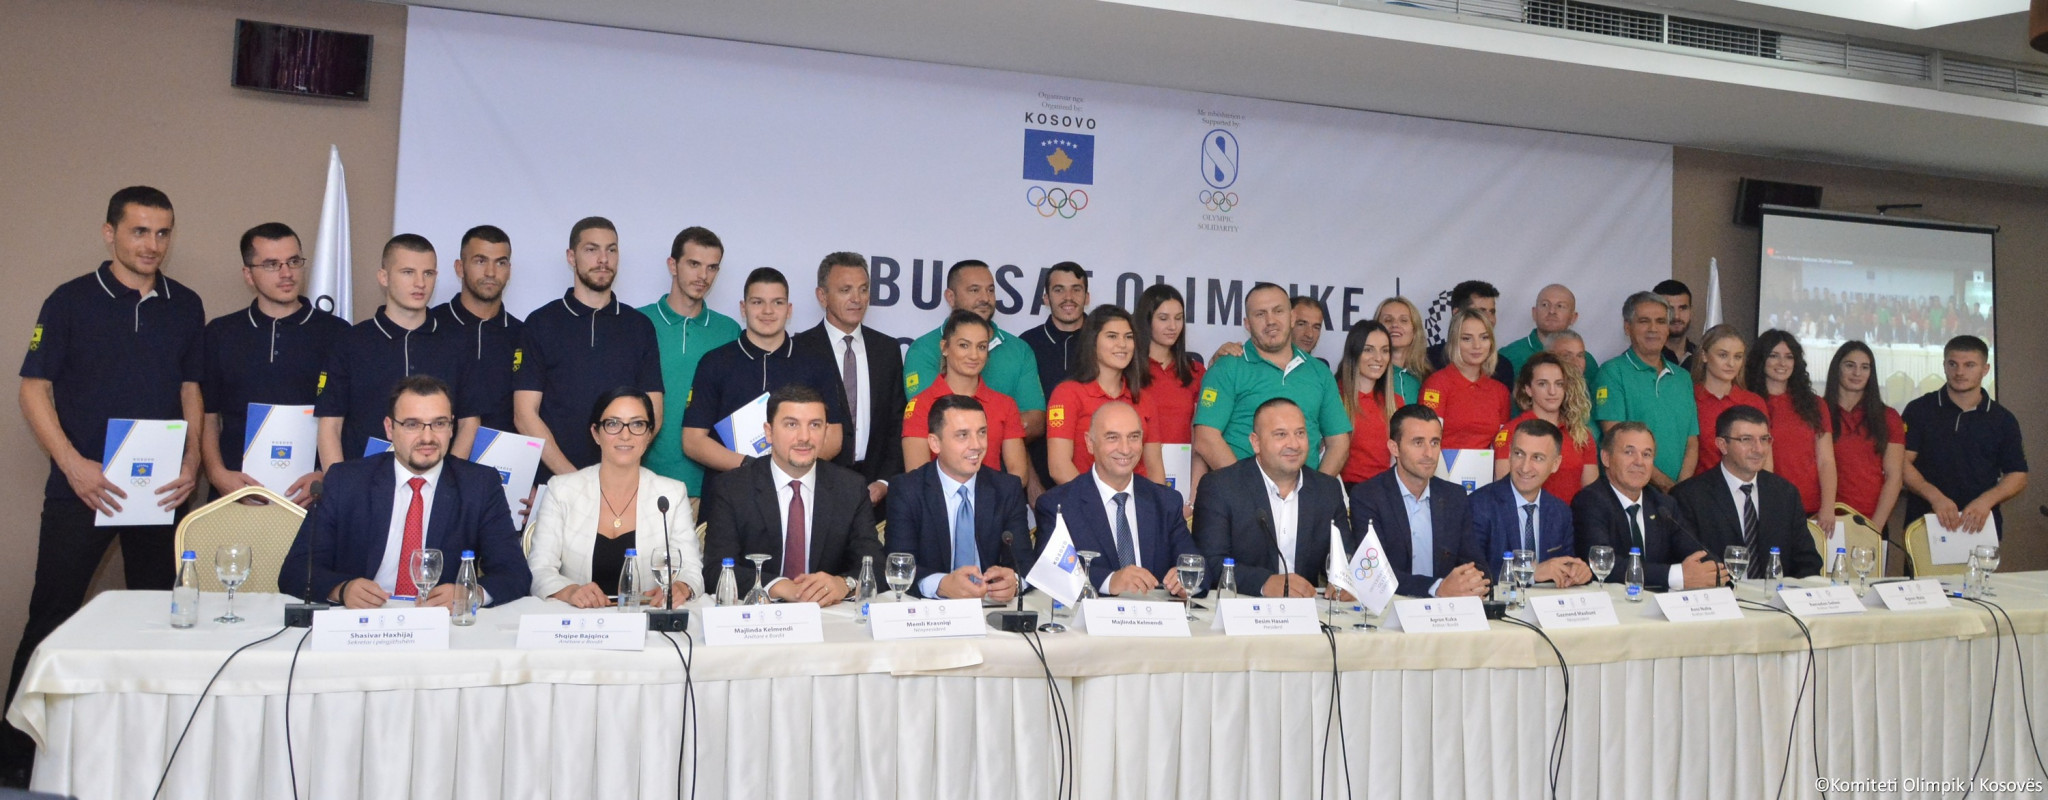 Recipients of Olympic scholarships for Tokyo 2020 and members and staff of Kosovo Olympic Committee ©Kosovo Olympic Committee